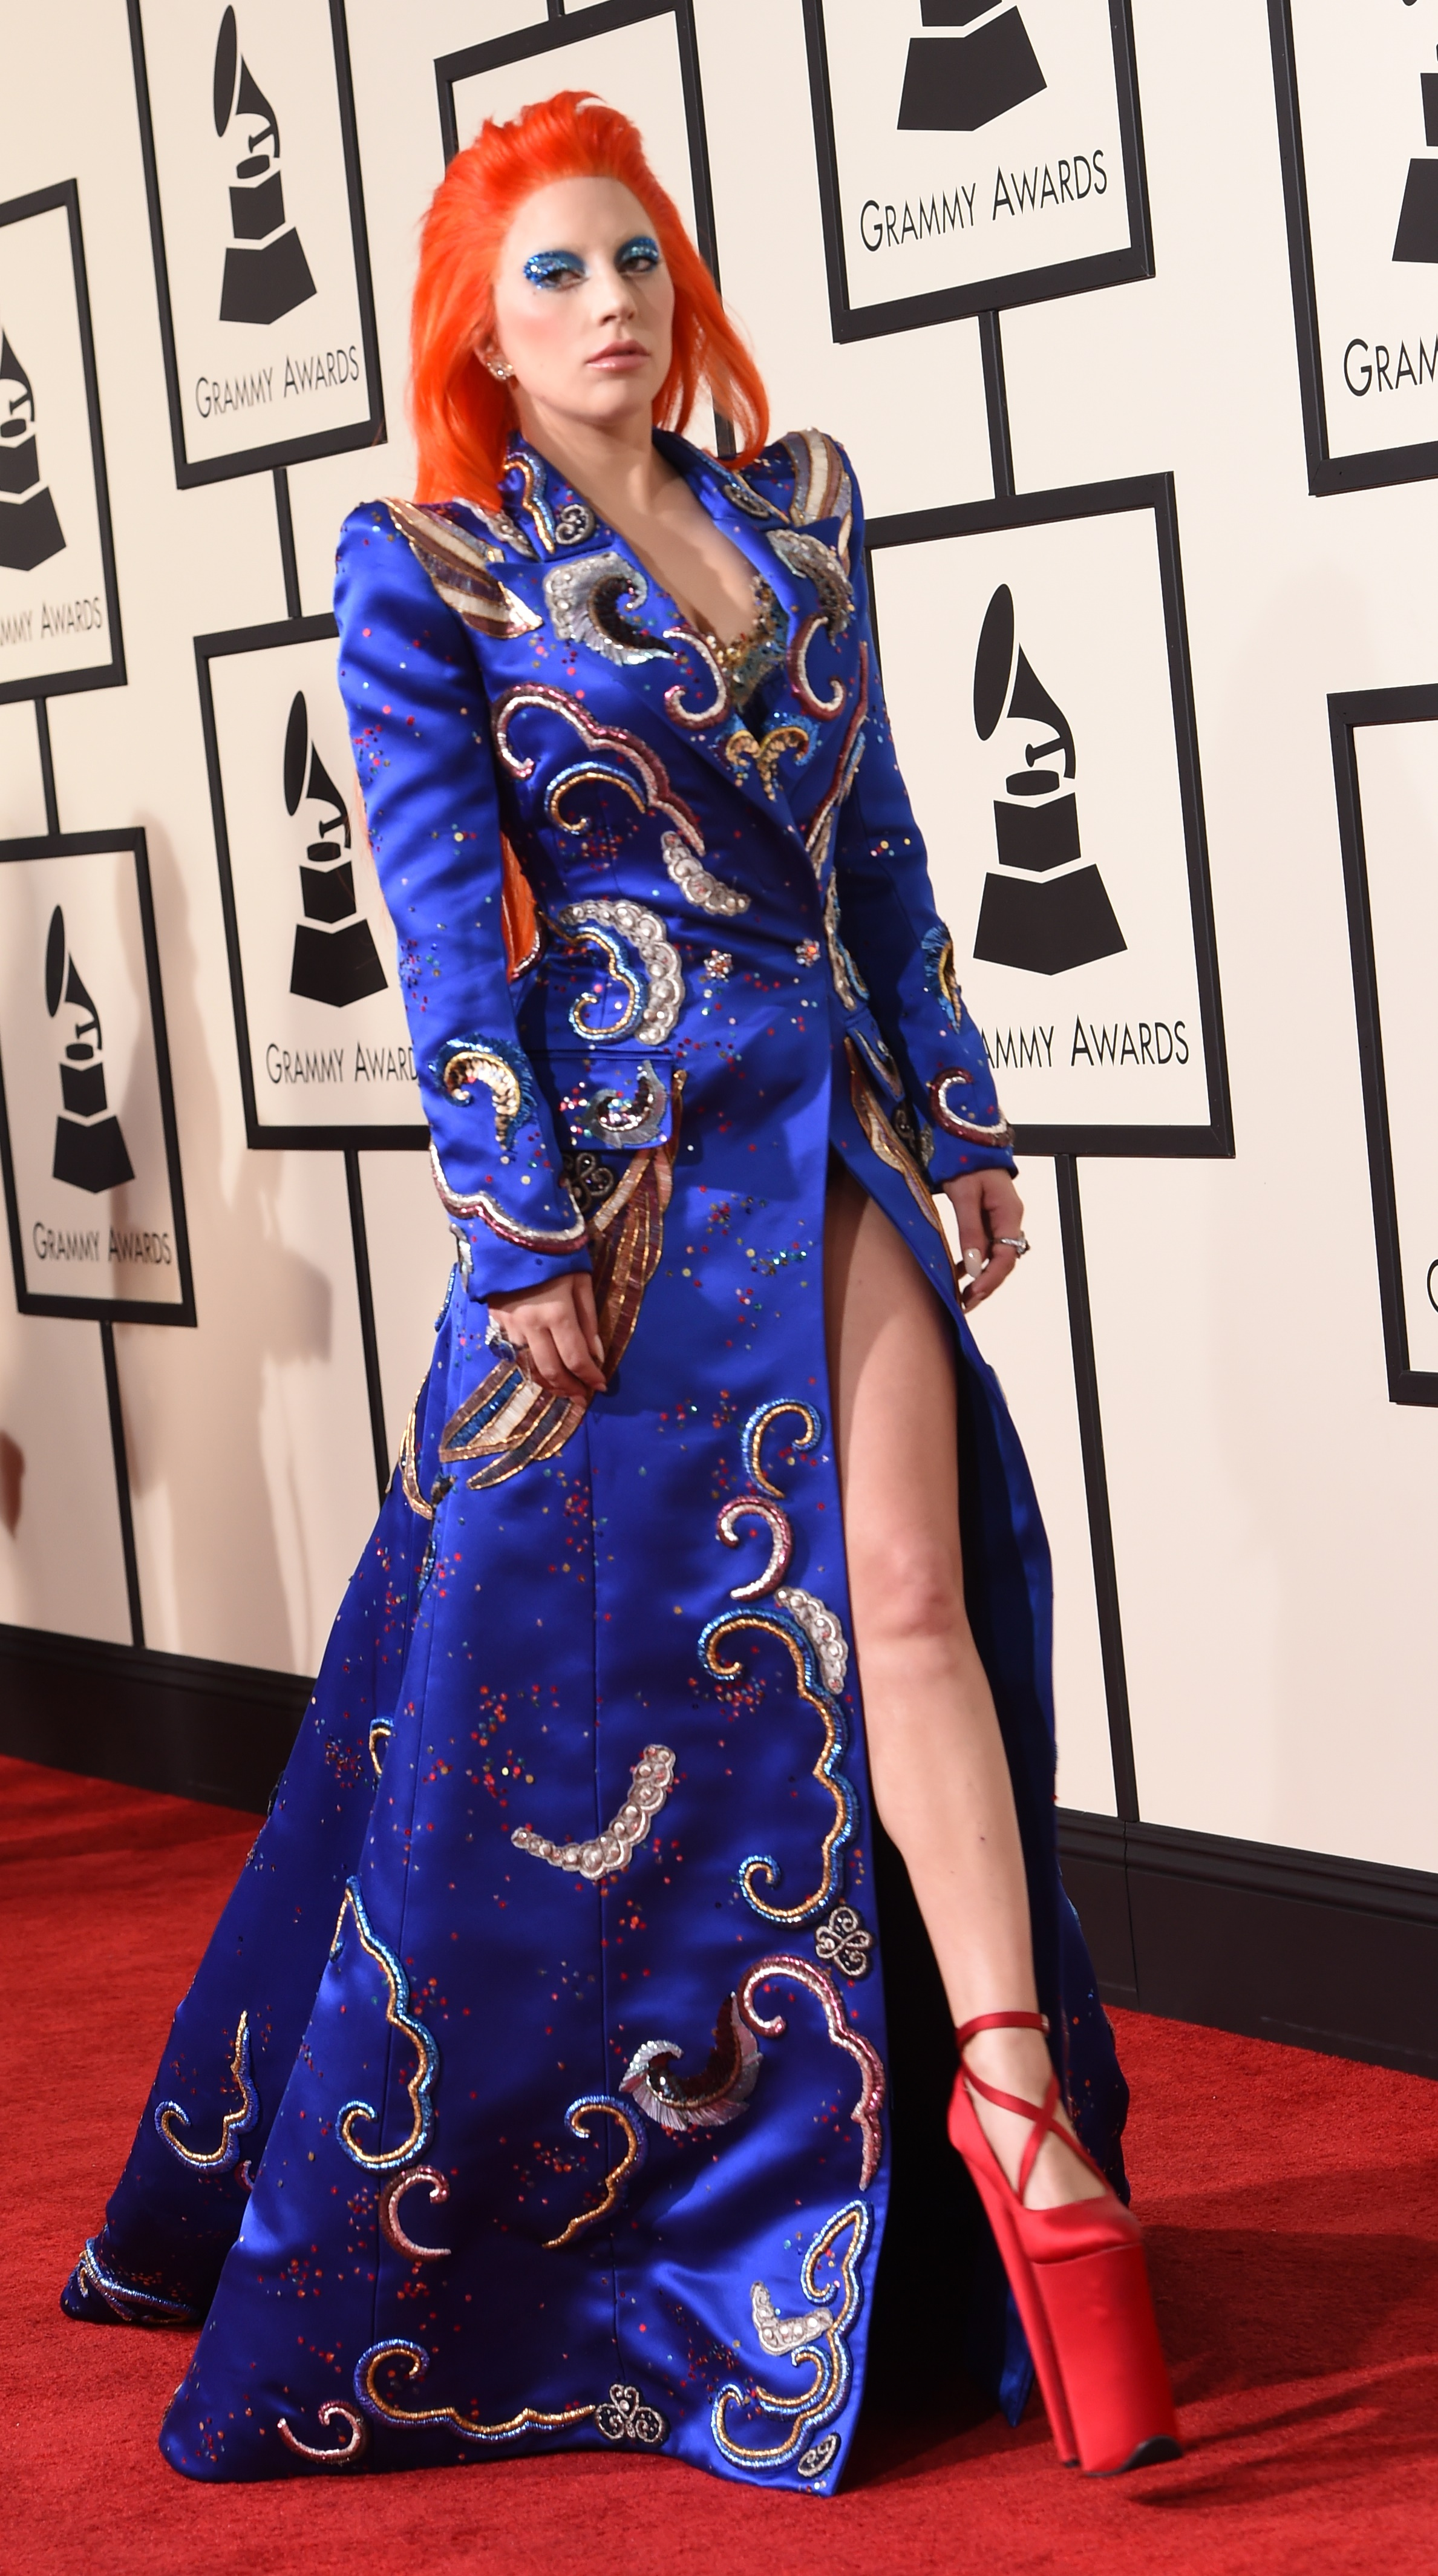 Lady Gaga attends the 58th GRAMMY Awards at Staples Center on Feb. 15, 2016 in Los Angeles.